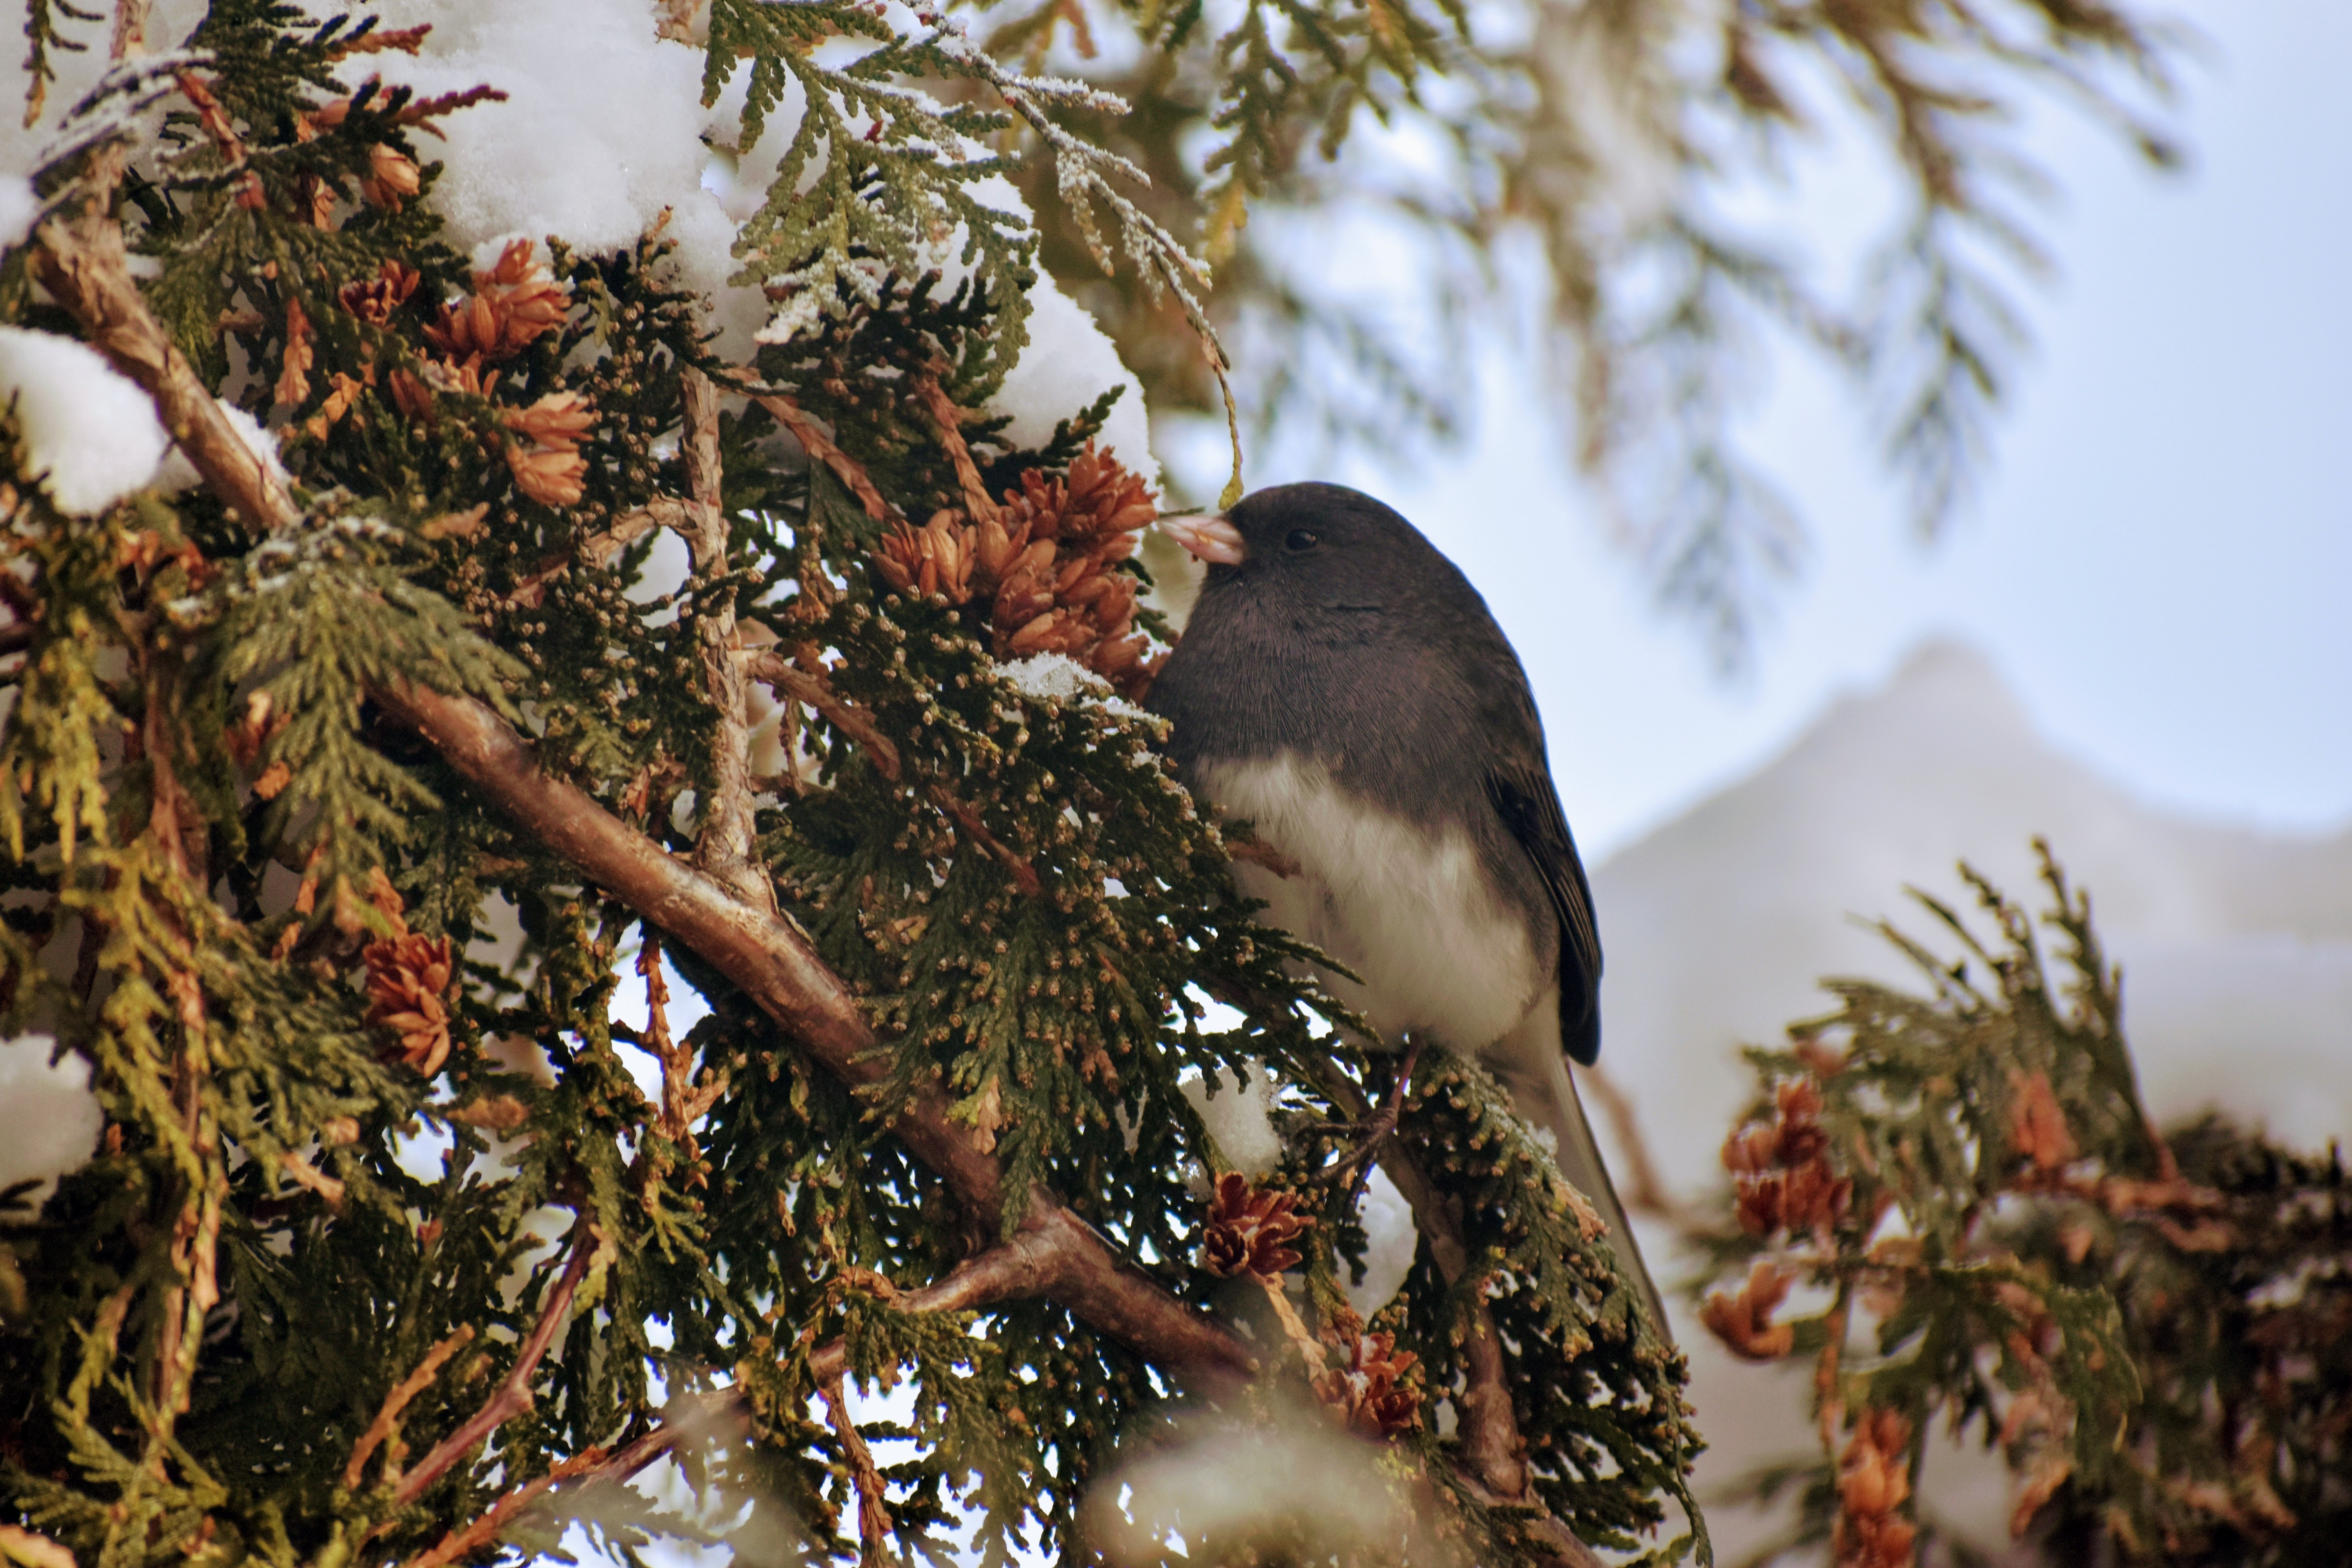 gray and white bird perched on tree branch